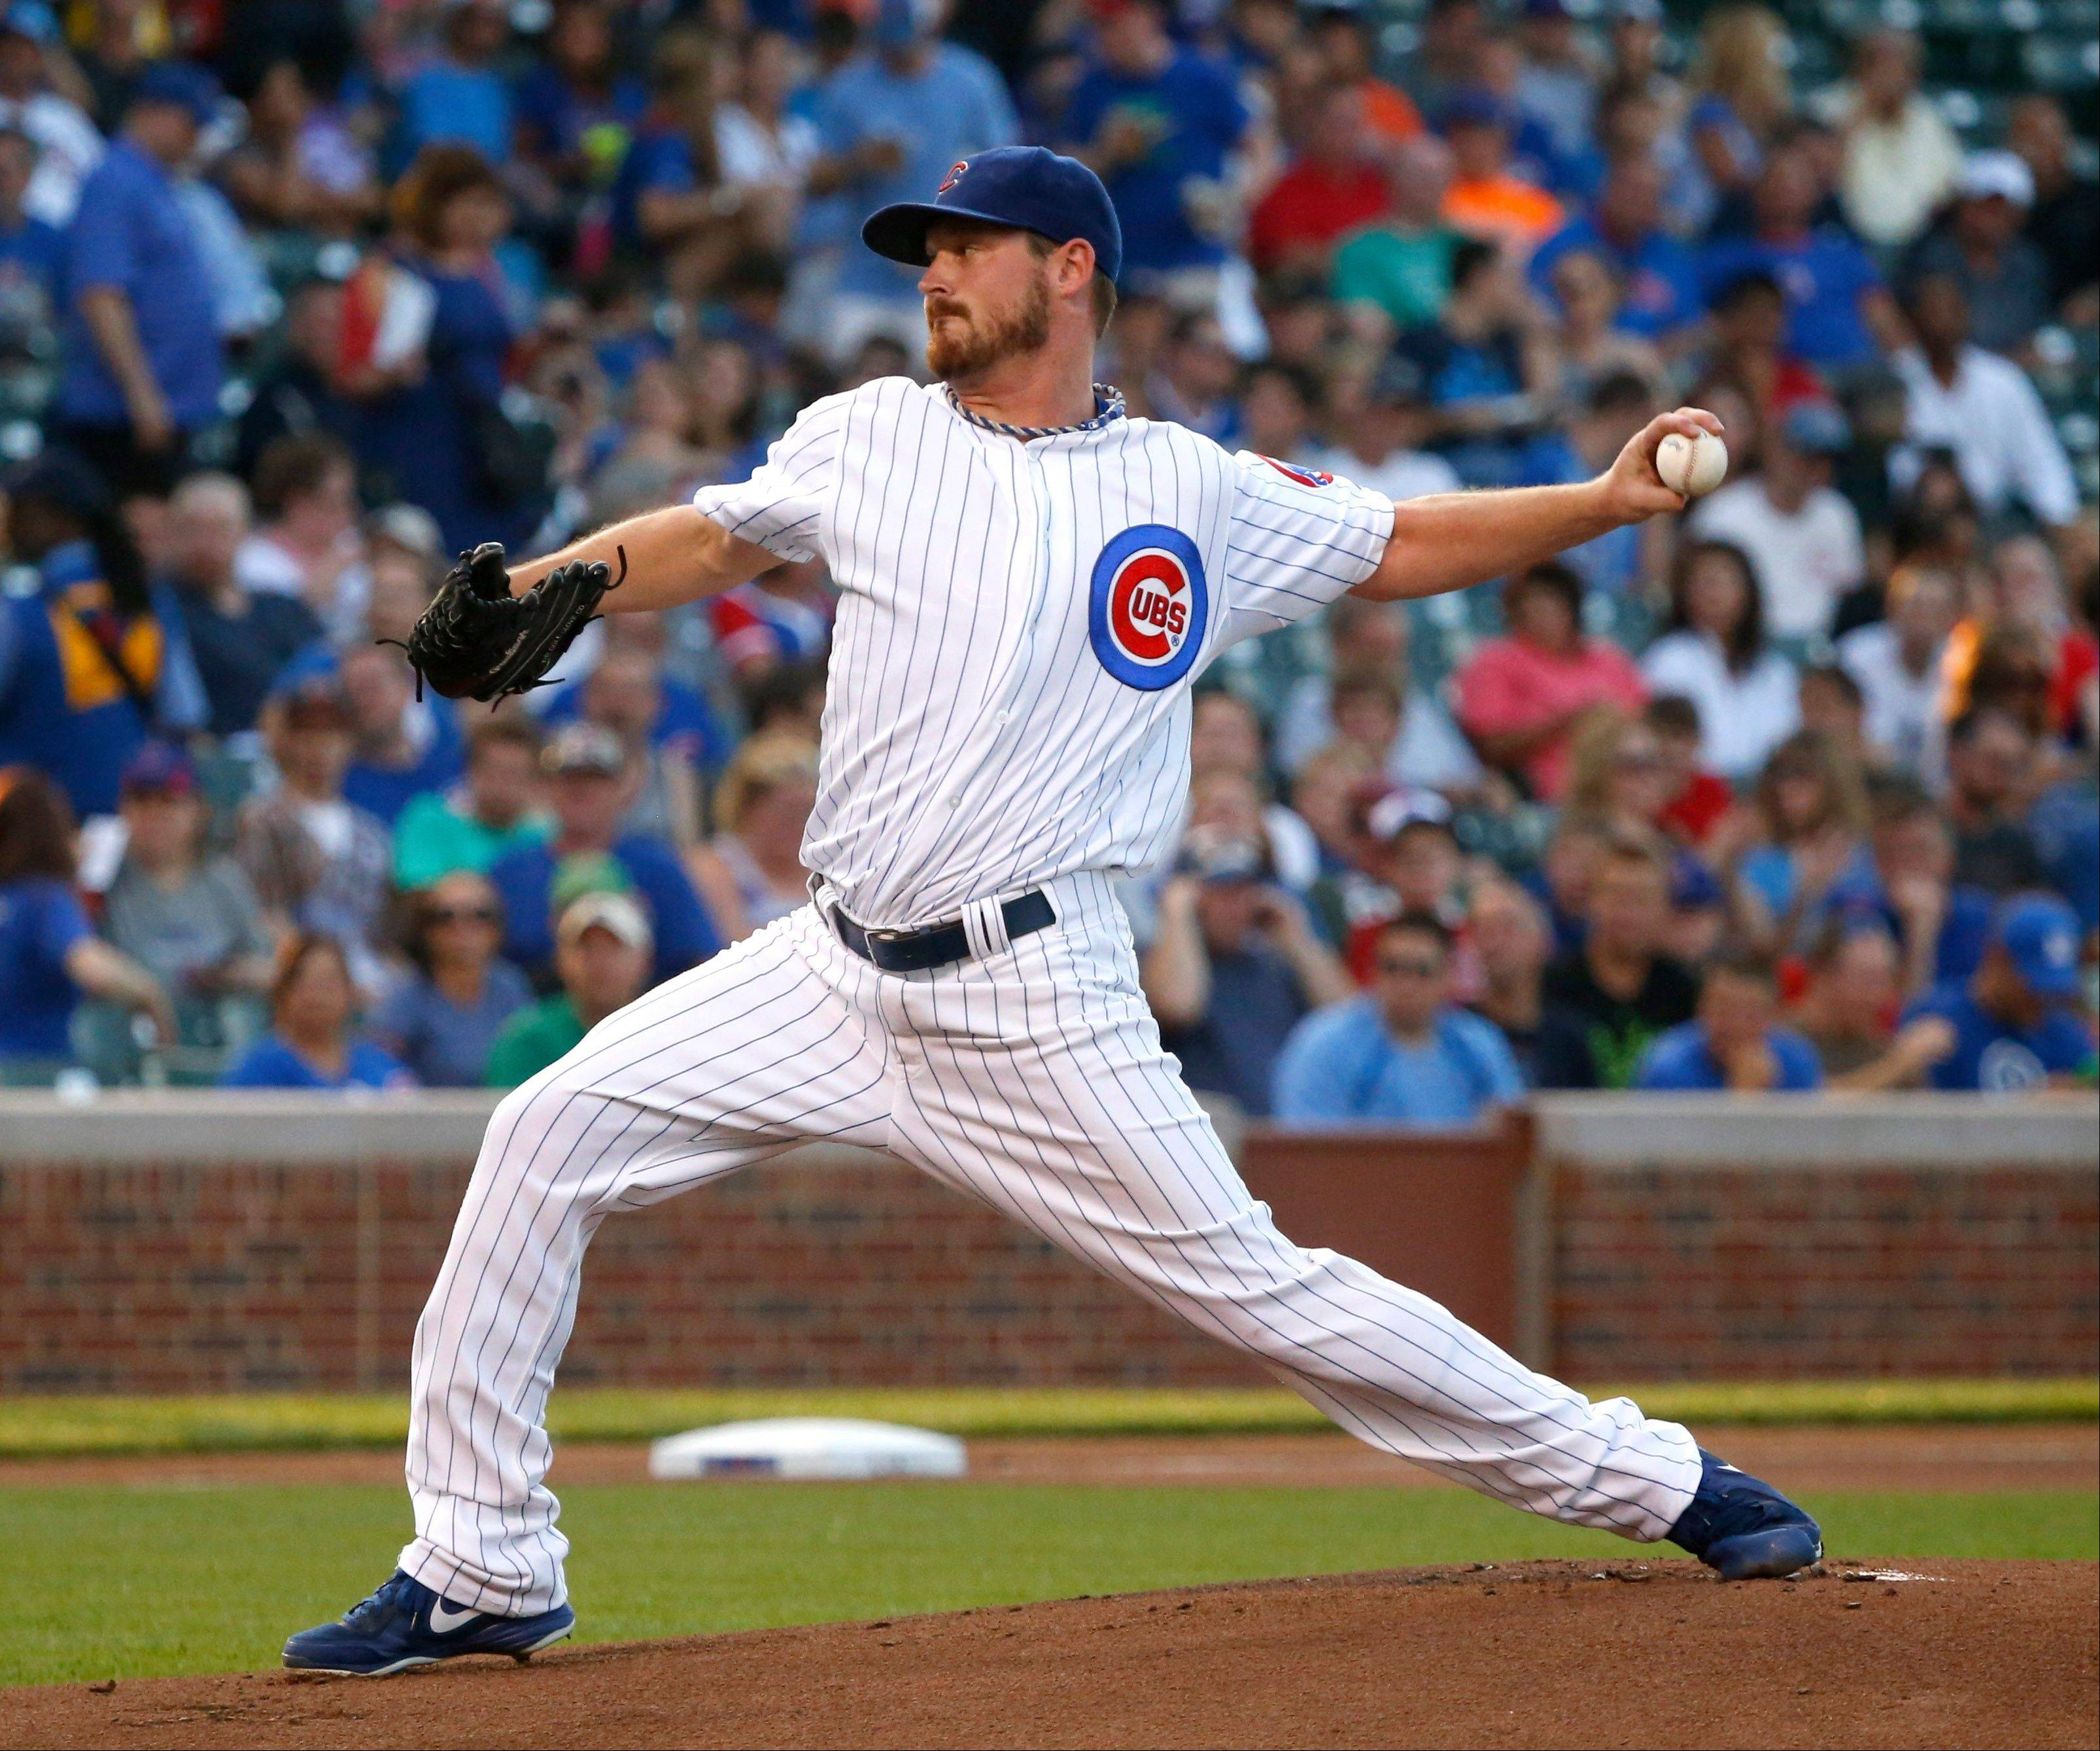 For Len Kasper, the highlight of the Cubs' first half was, without a doubt, the ascendance of pitcher Travis Wood.